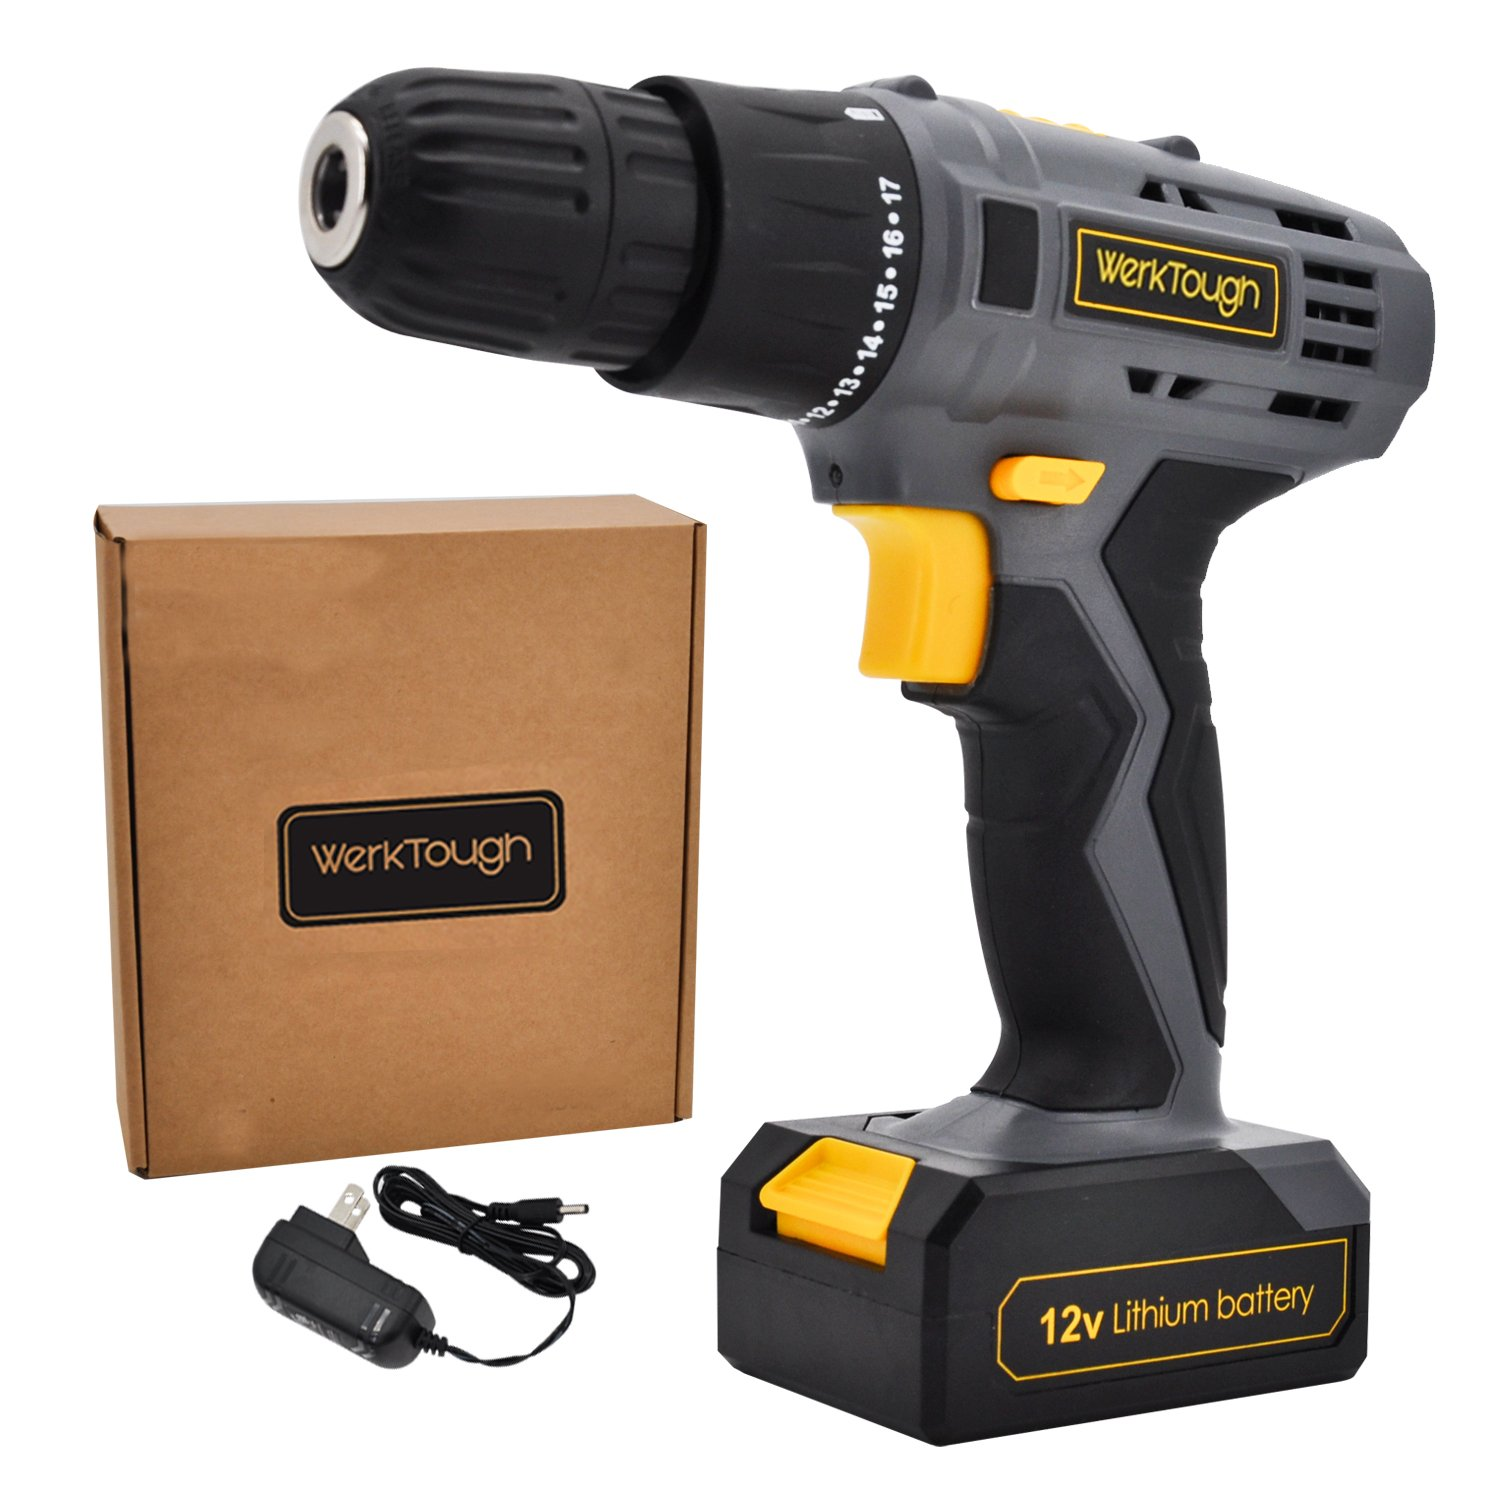 Werktough D018 12V Cordless Drill Driver Powerful Screwdriver Lion Battery